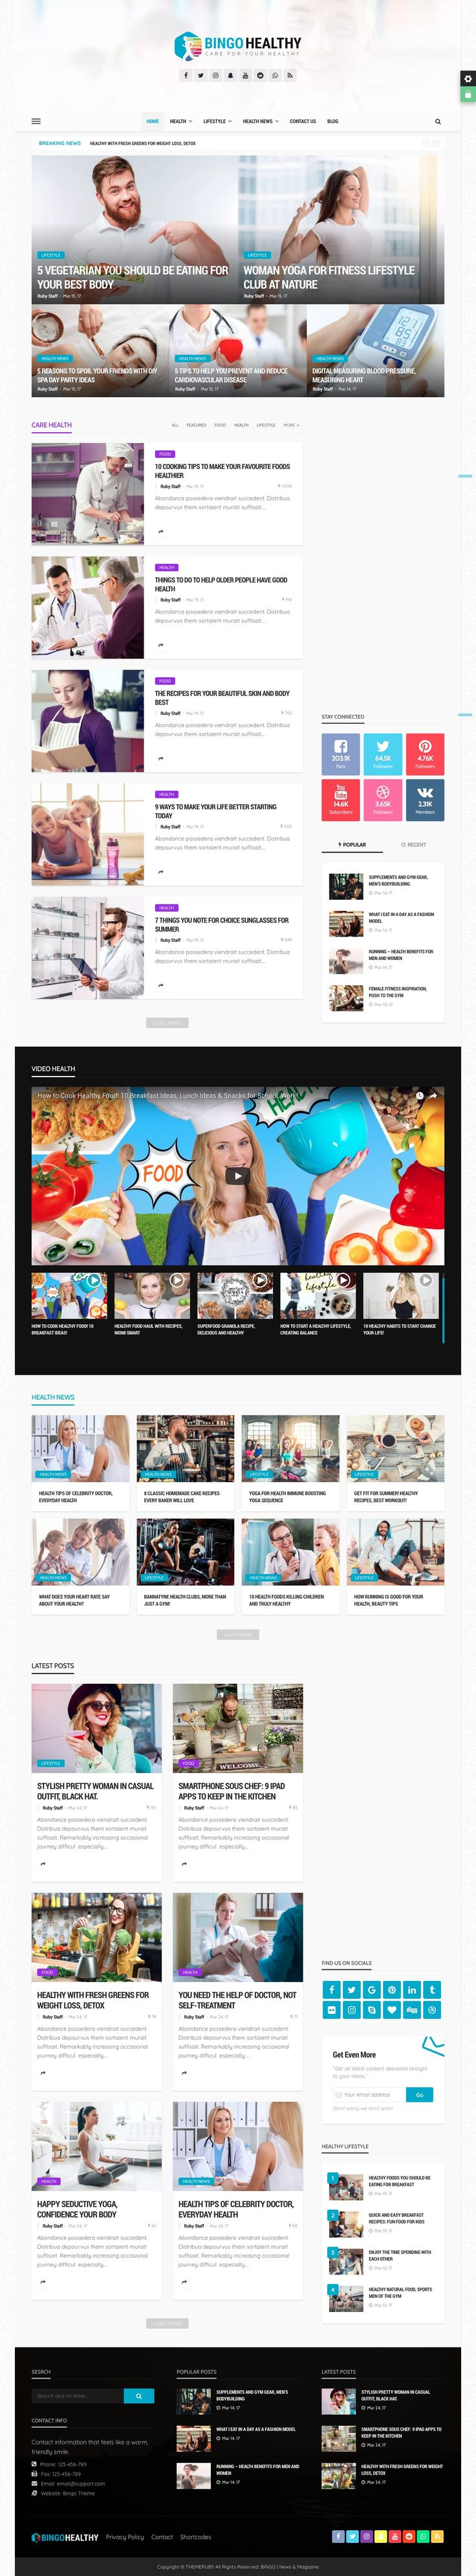 Bingo is a Multi-Purpose Newspaper, Magazine WordPress Theme best suited for sites that deliver news about Technology, Fashion, Sport, Video, Healthy, Travel. Comes with a huge range of powerful tools in the back-end saving time and more money including: Page Builder, Theme Options, Shortcodes, Widgets, Mega Menu, support ajax for every block, layout. Include Smart Ajax filter by categories, tags, popuplar and author. ajax pagination include load more, next and previous, and infinite…